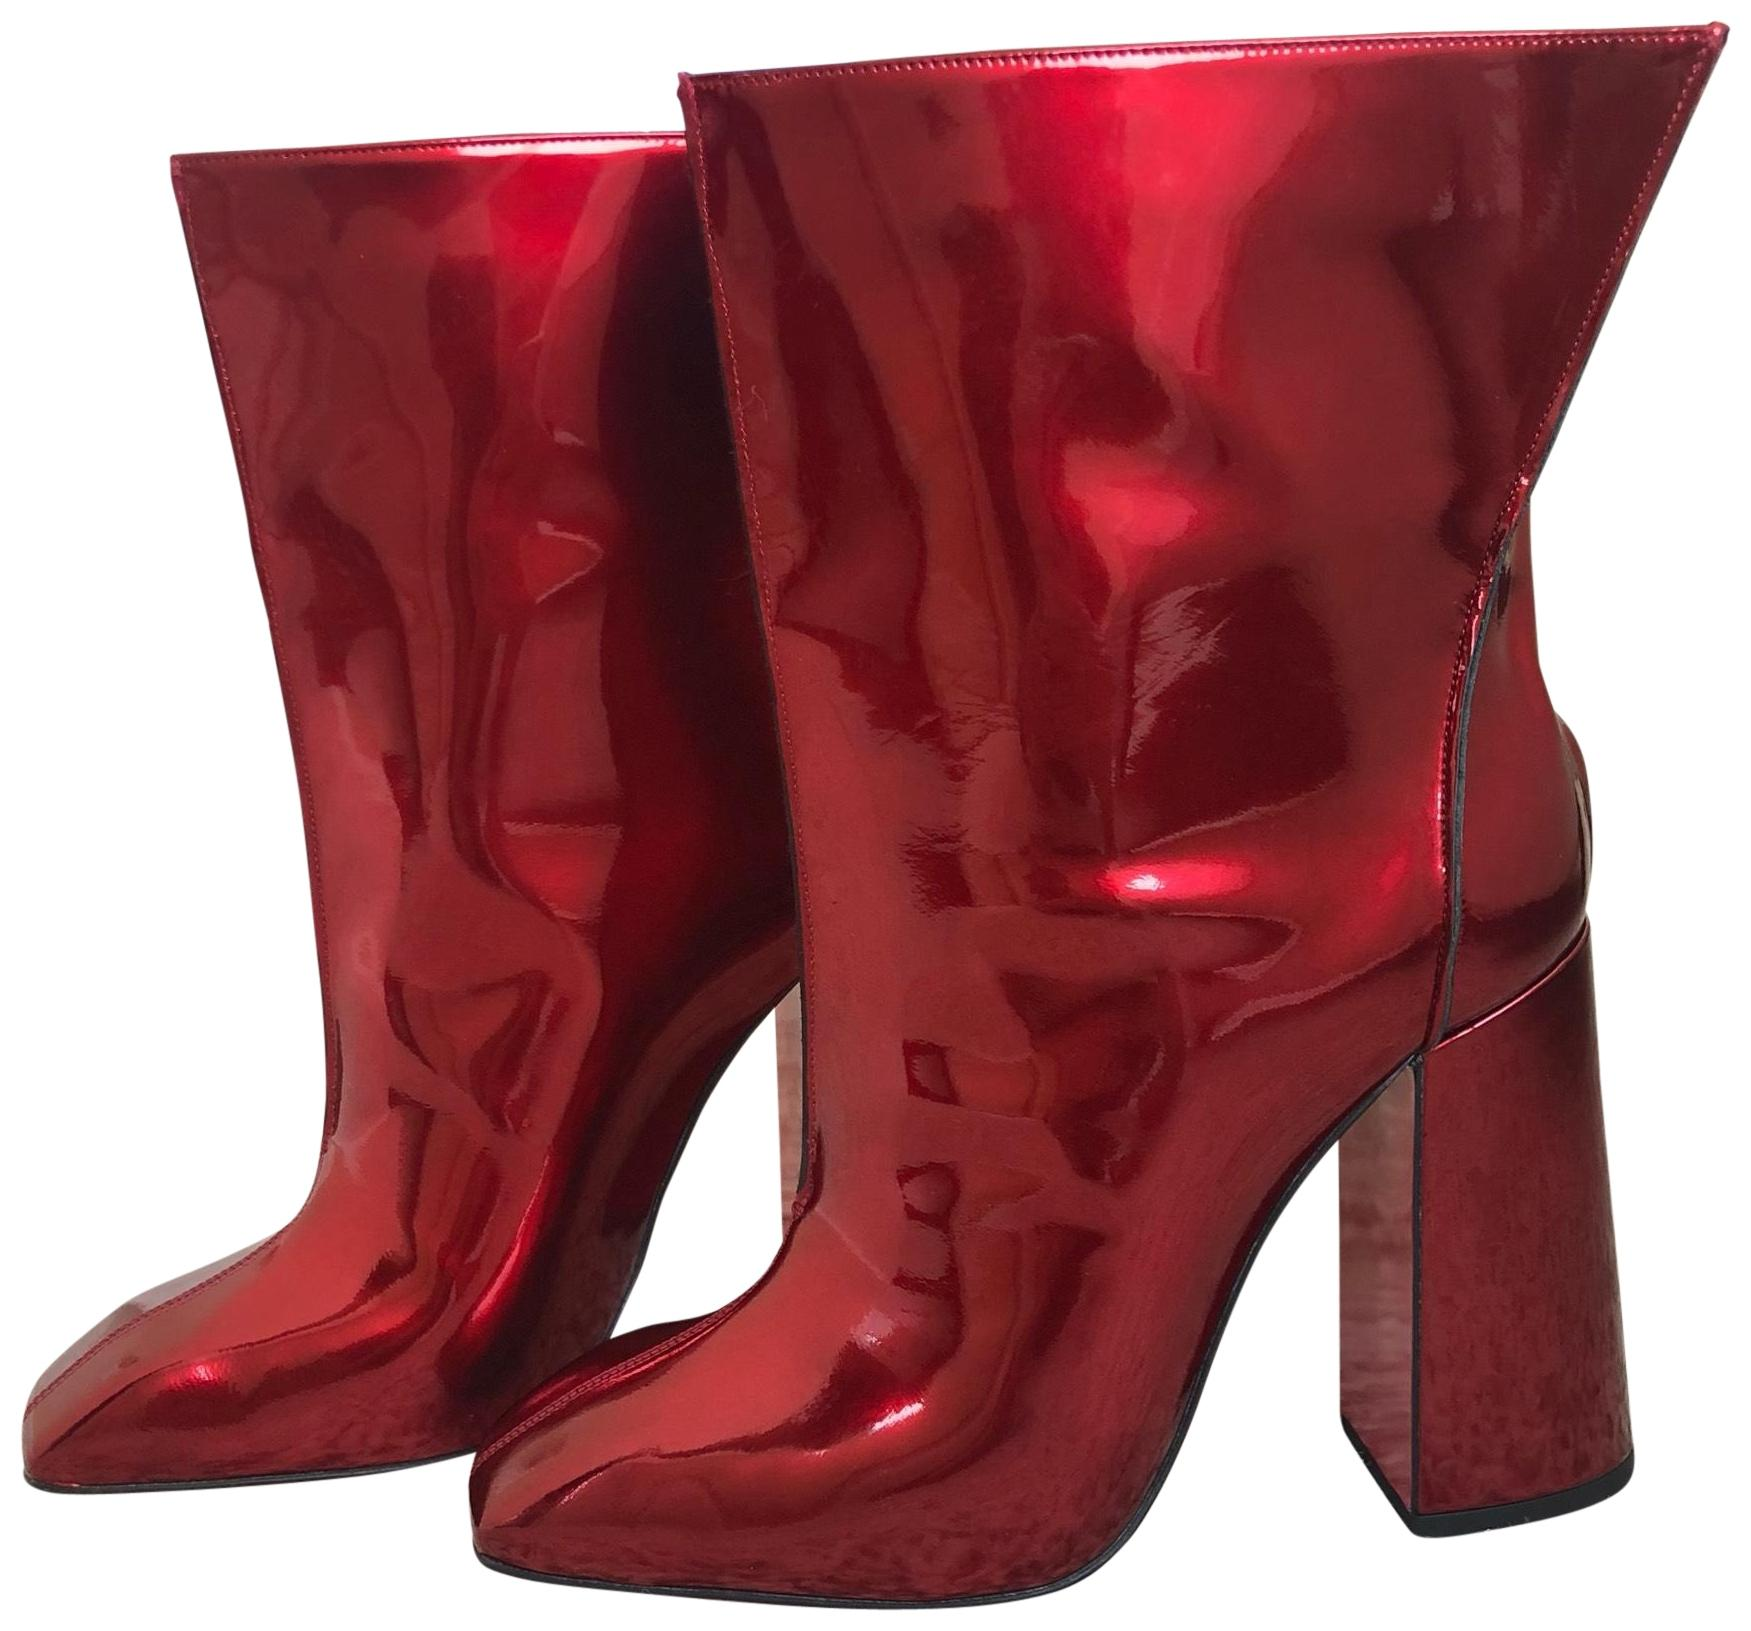 Christian Louboutin 10 Red Hilconissima 100mm Patent Boots/Booties Size US 10 Louboutin Regular (M, B) a0d62a